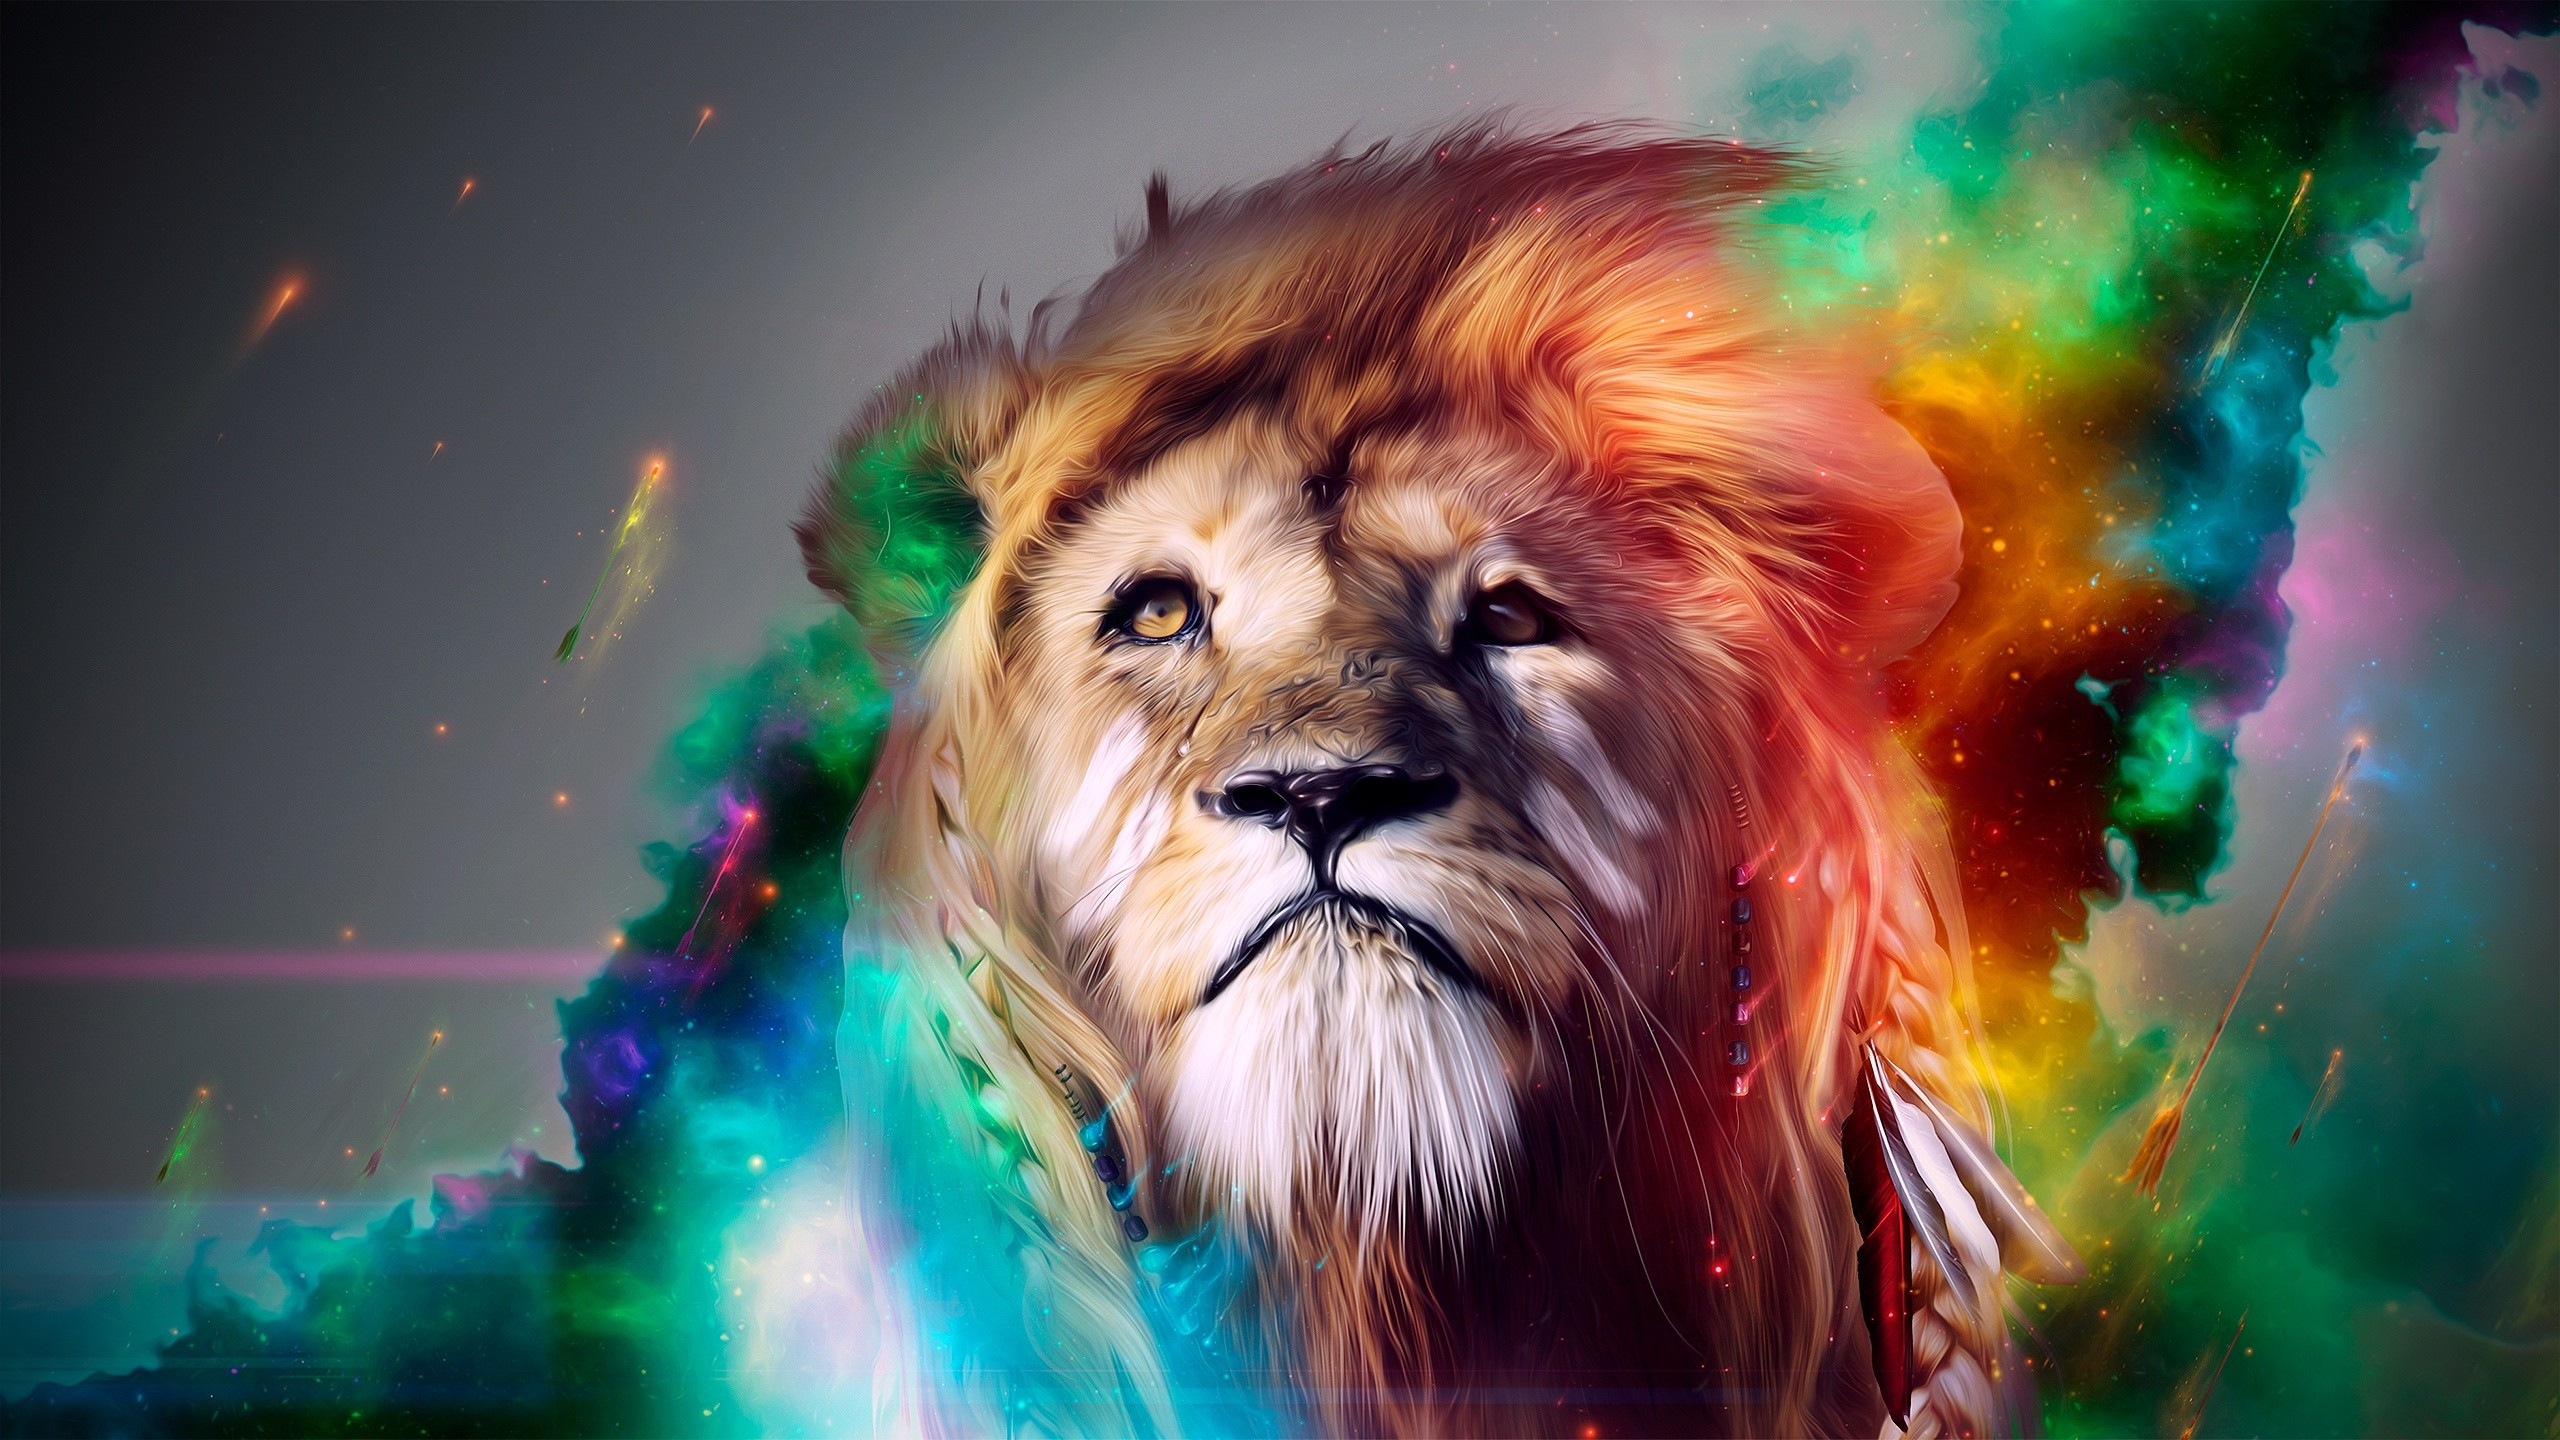 Lion CG Full HD Wallpaper And Background Image